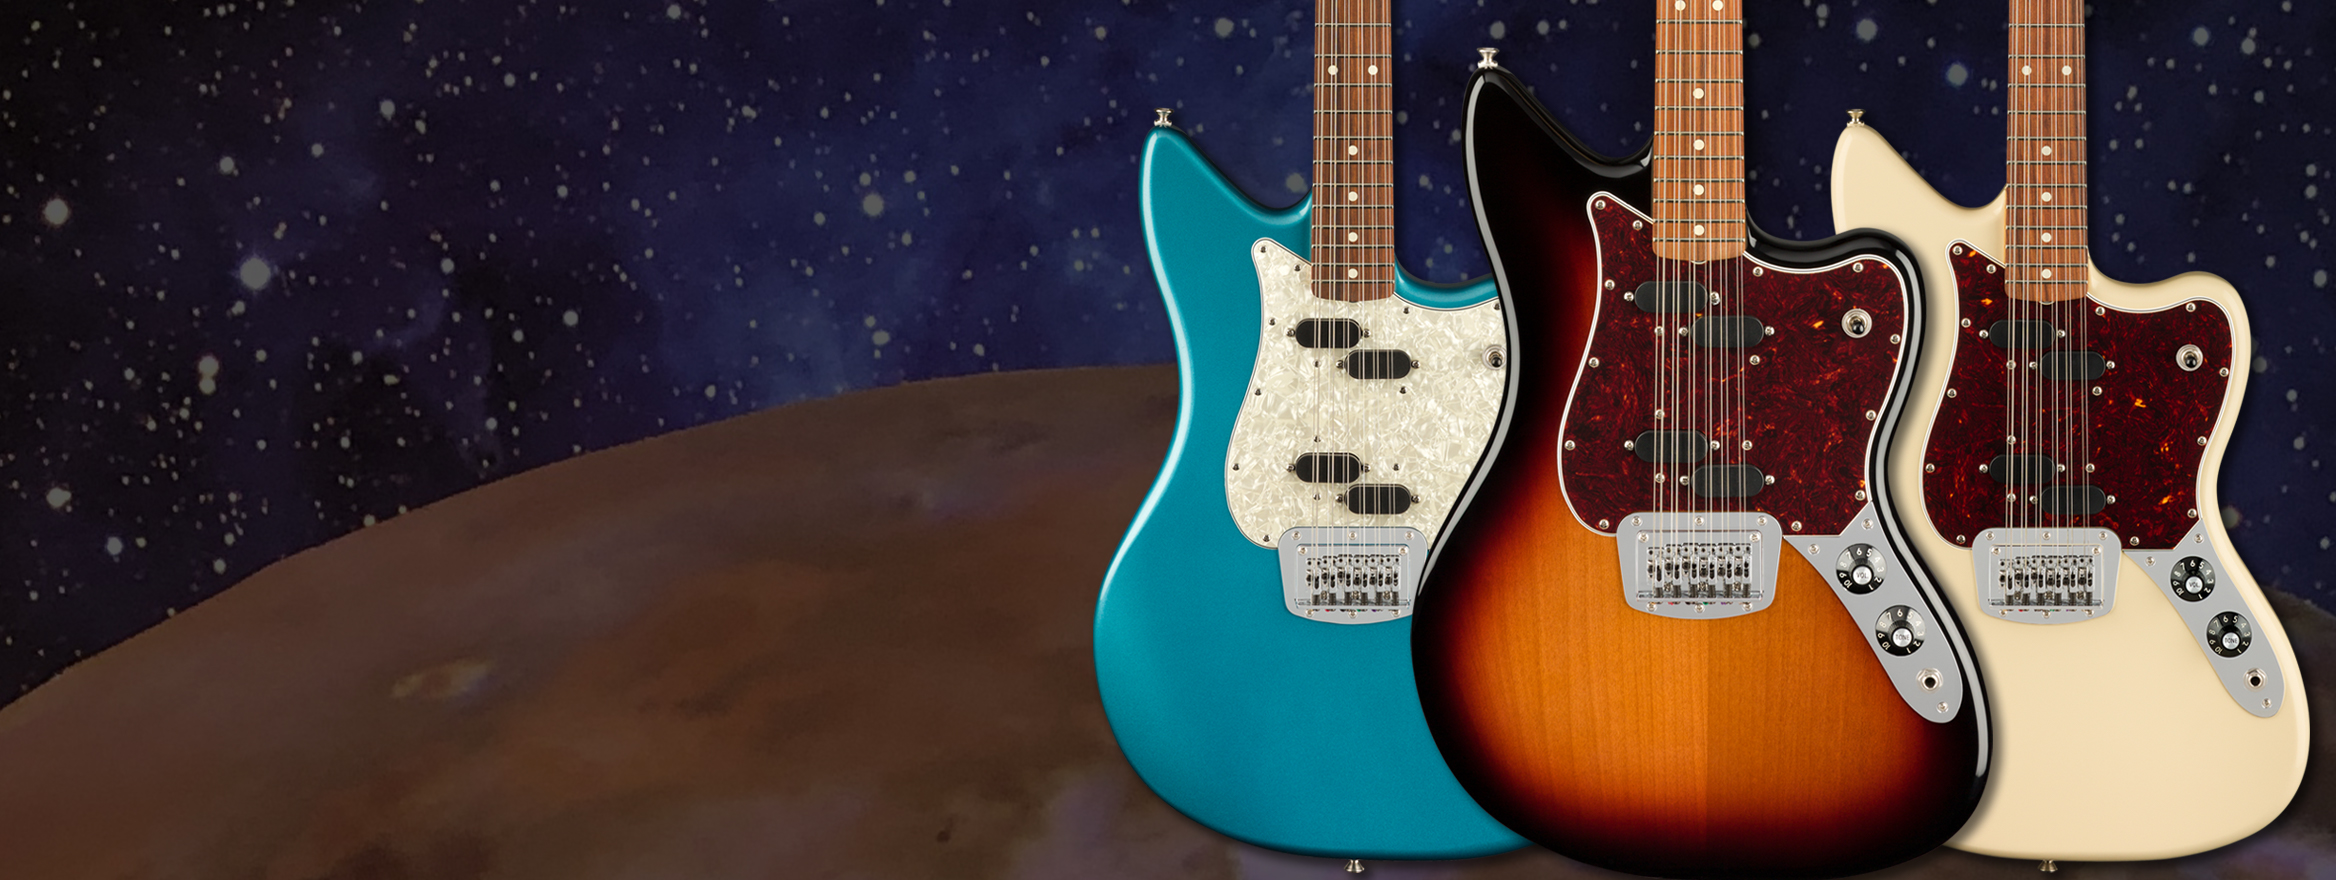 Inside the Alternate Reality Electric XII | Fender Guitars